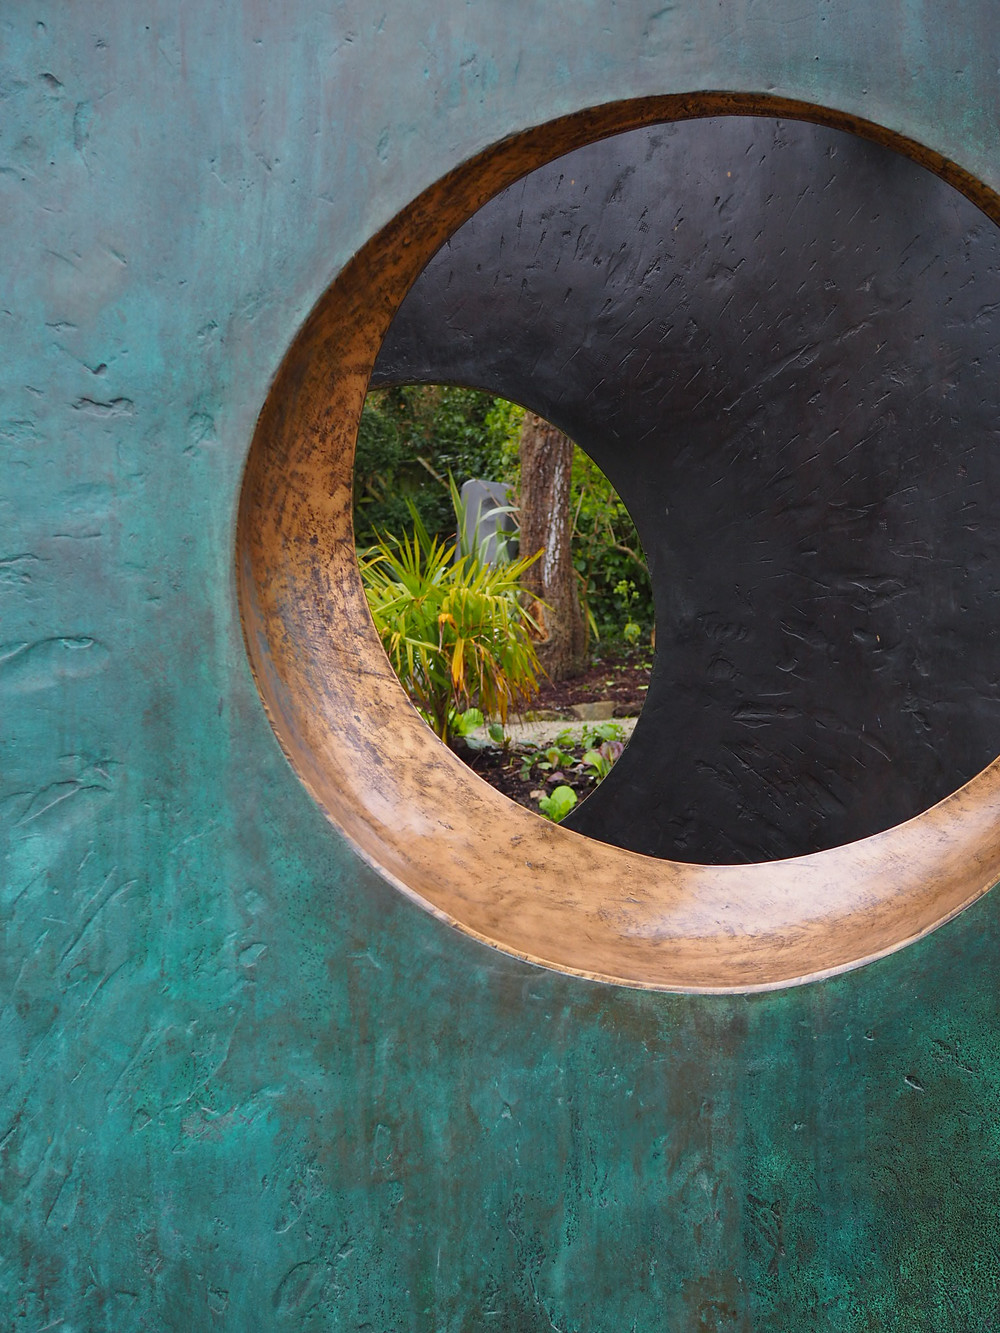 Looking through one of the bronze sculptures at The Barbara Hepworth Sculpture Garden near St Ives.